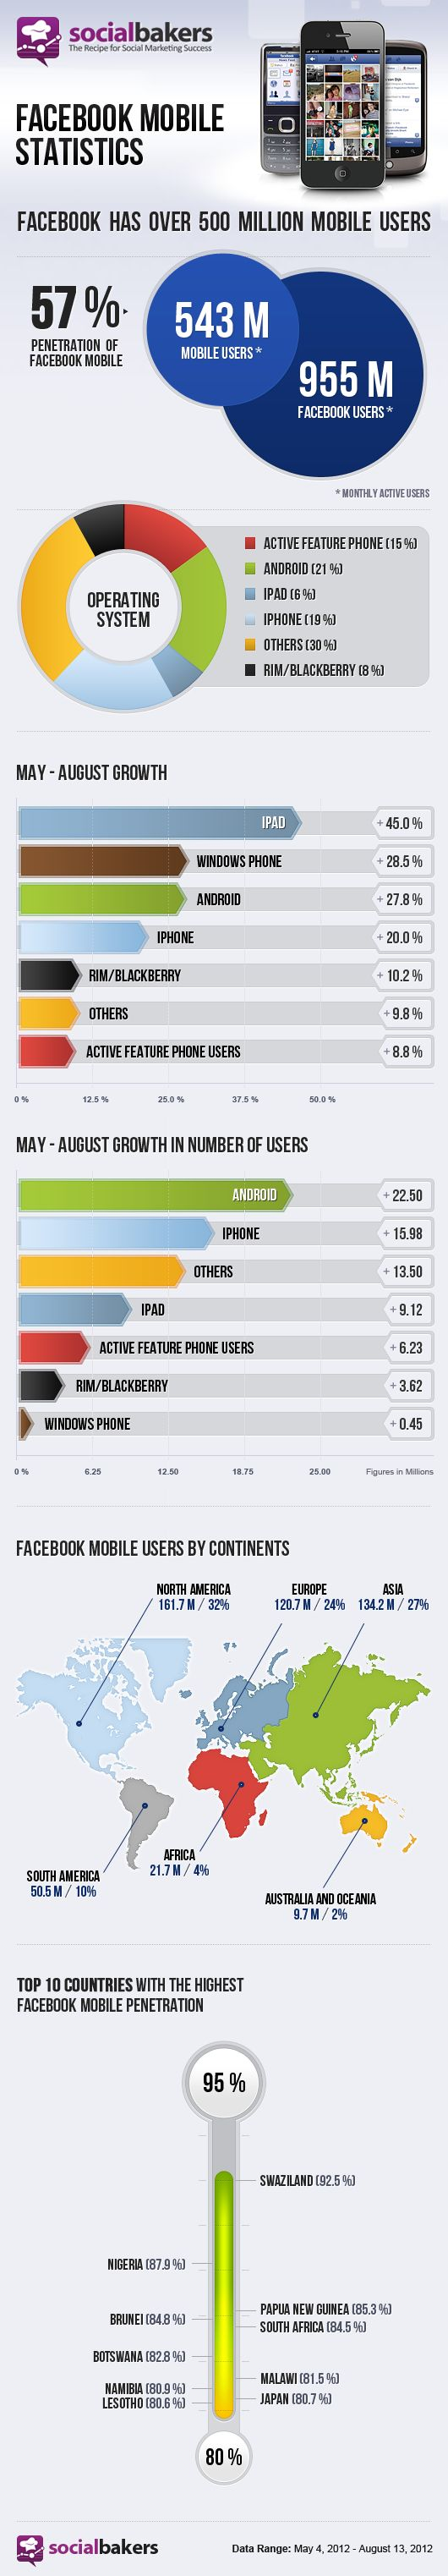 Facebook Mobile Statistics - Socialbakers